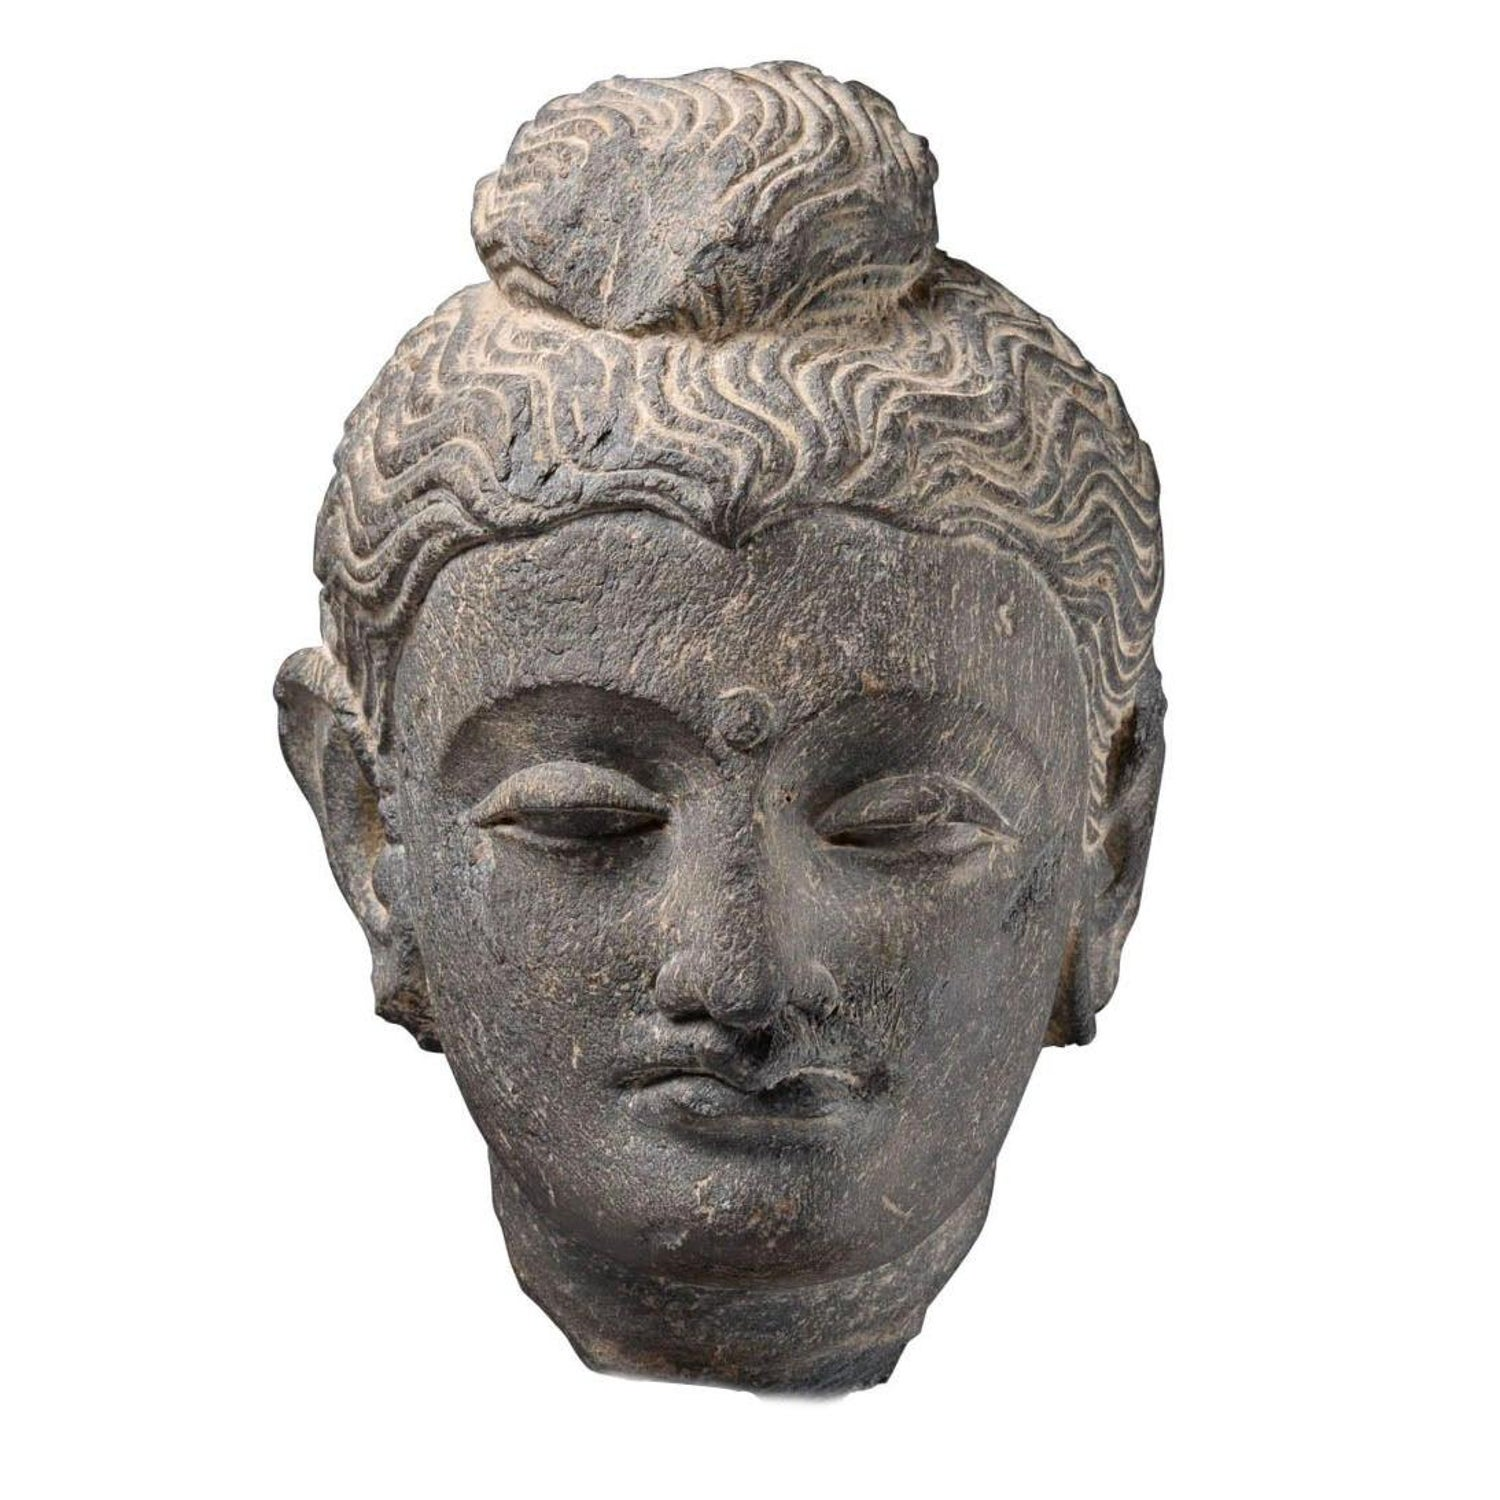 Gandharan Schist Head Of Buddha Ad 250 For Sale At 1stdibs